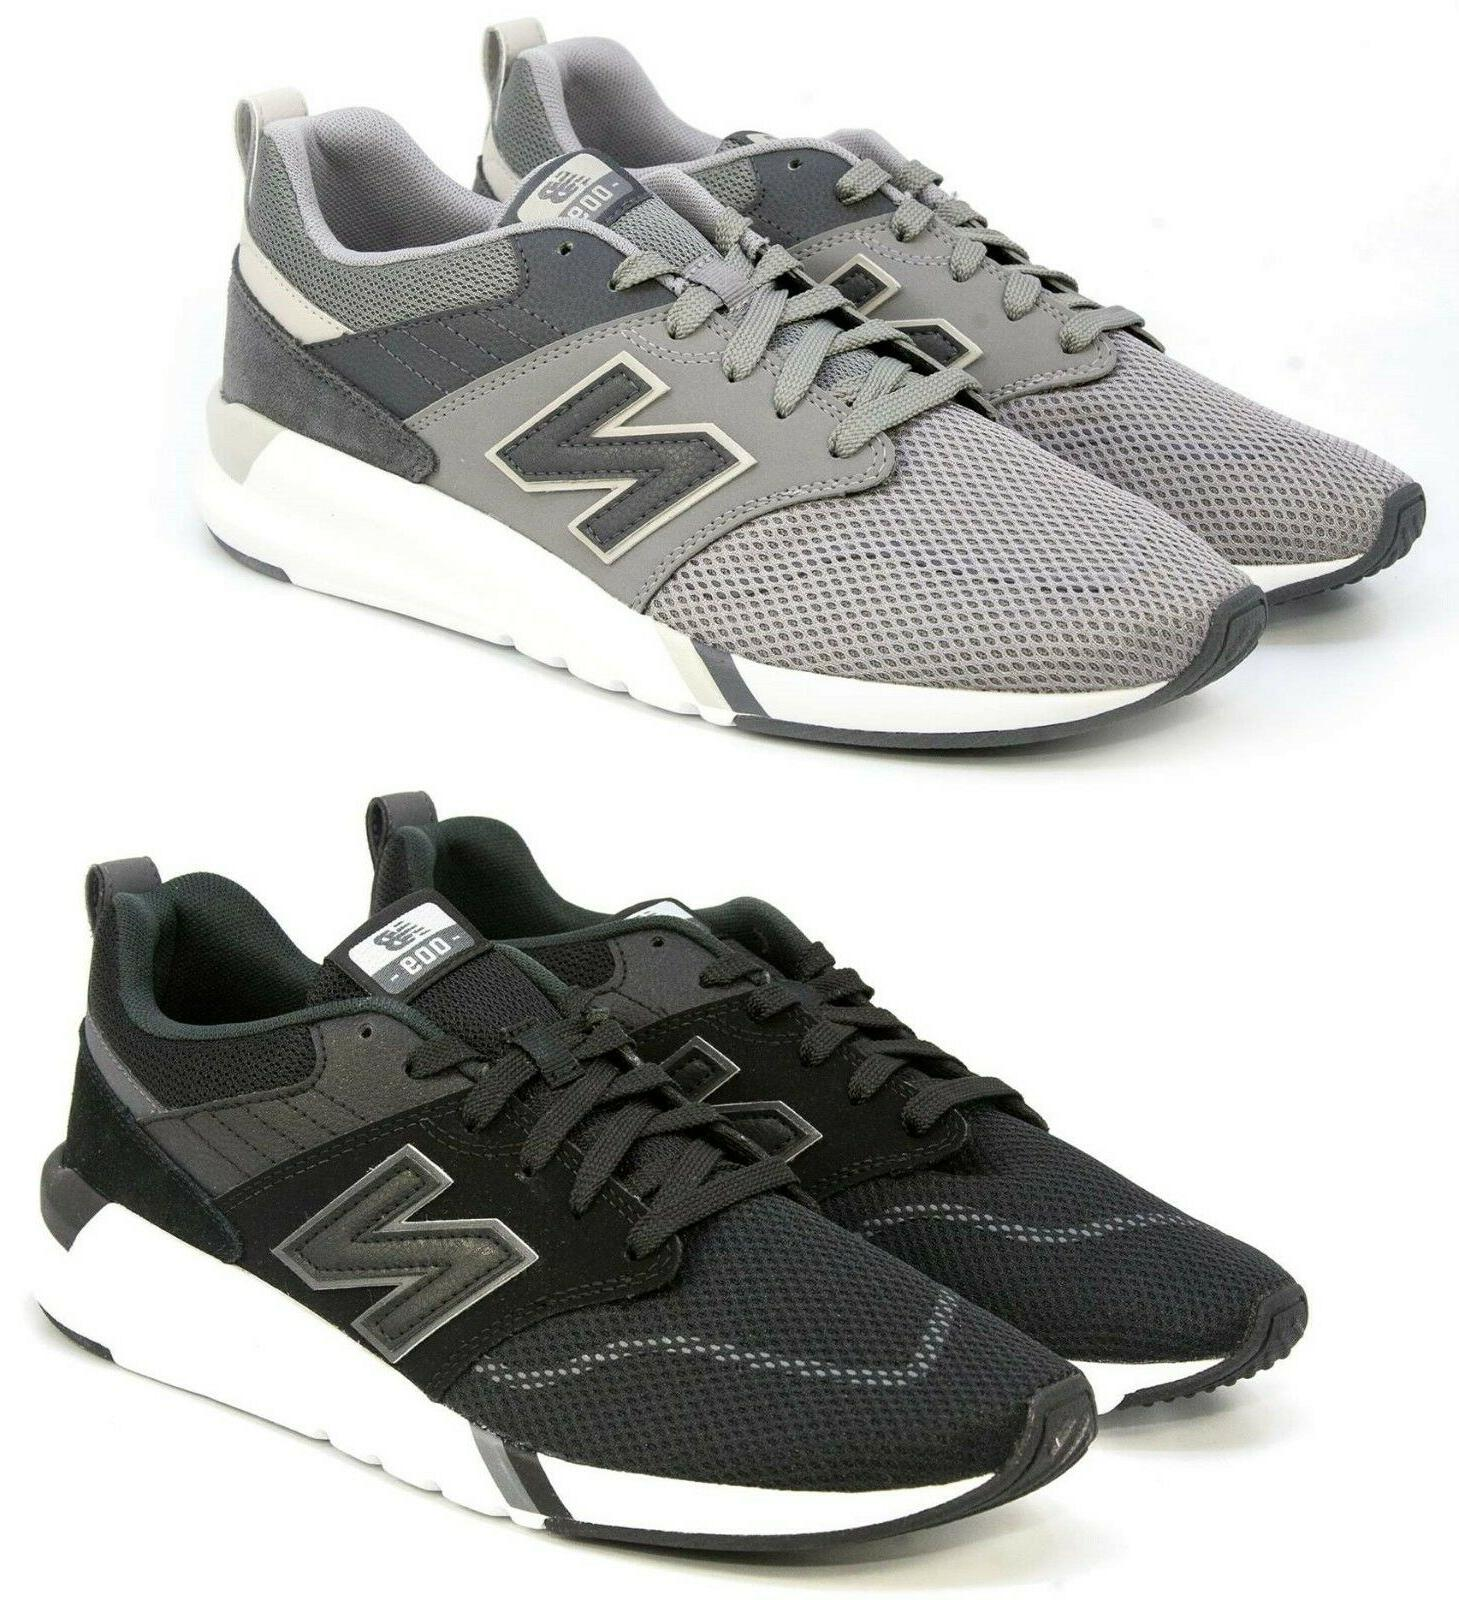 men s 009v1 lifestyle athletic sneakers comfort